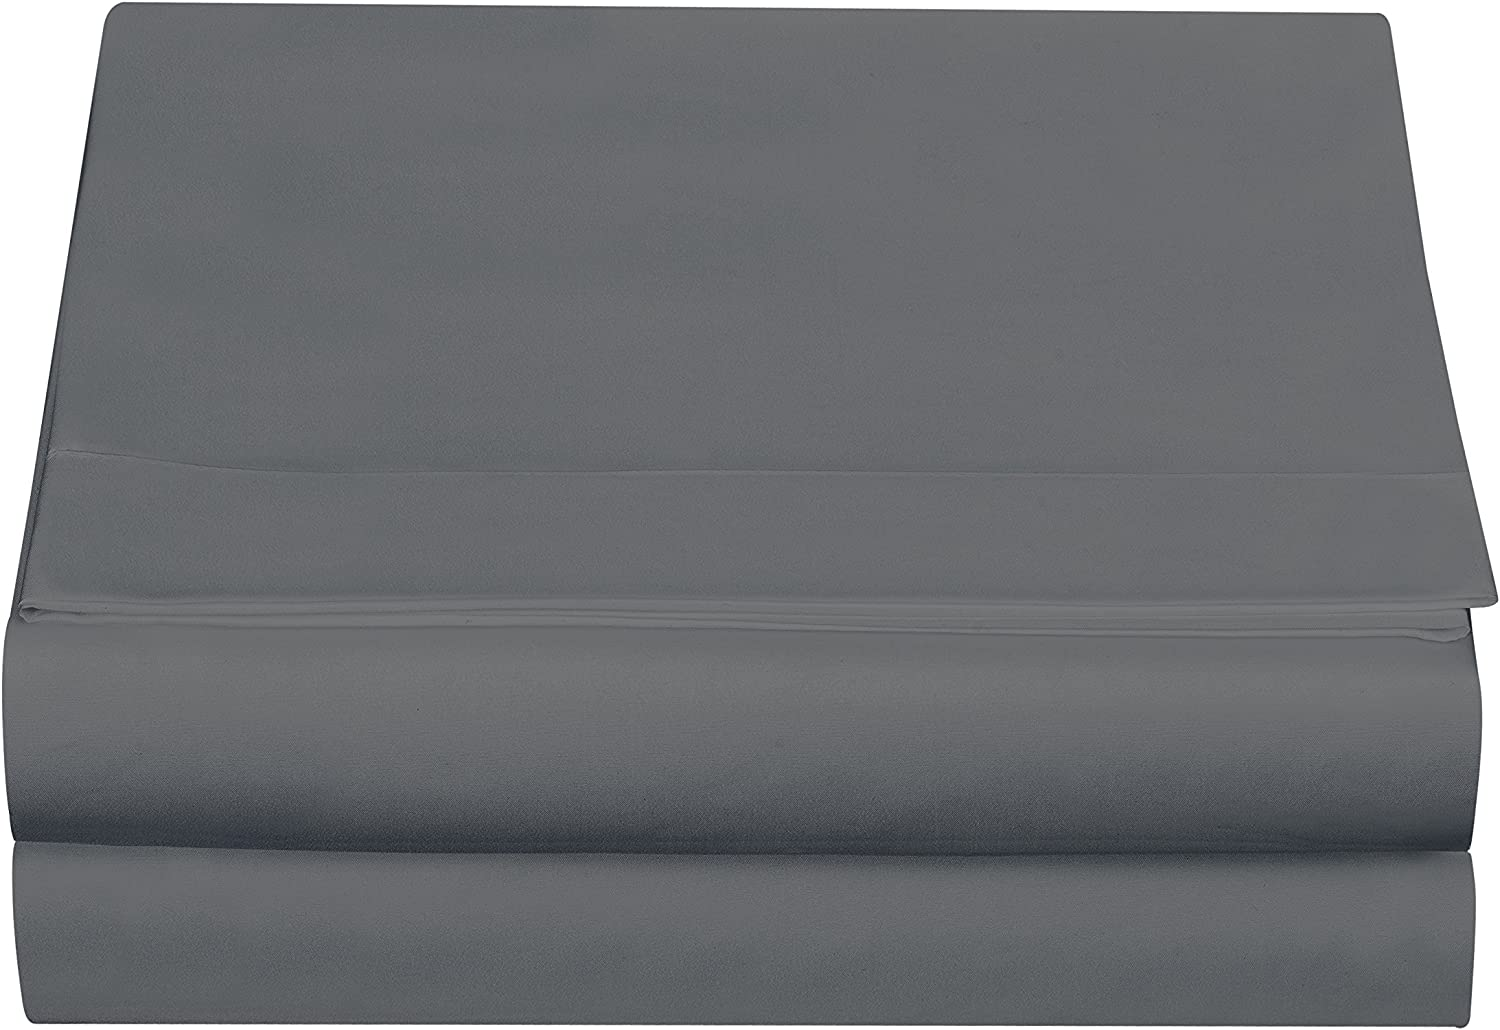 Cathay Luxury Silky Soft Polyester Single Flat Sheet, Queen Size, Gray: Home & Kitchen